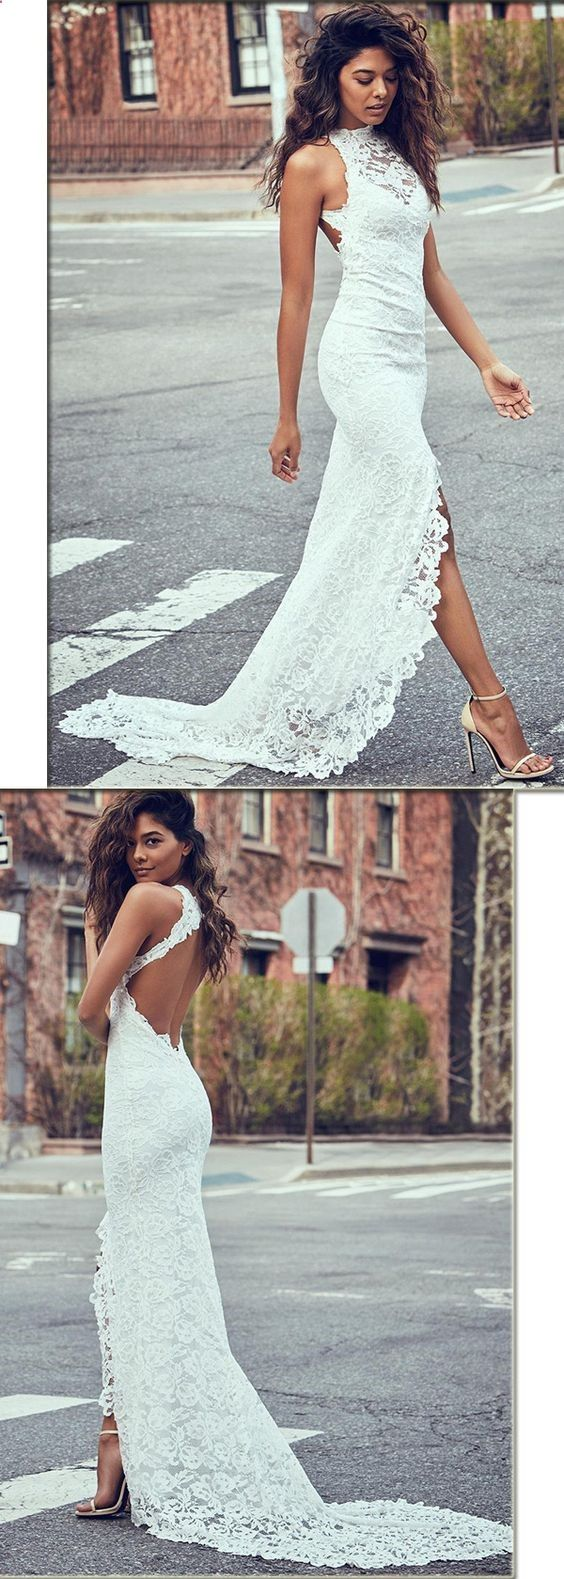 Outside wedding dresses   Fall Wedding Ideas visit More outside wedding ideas funnywedding